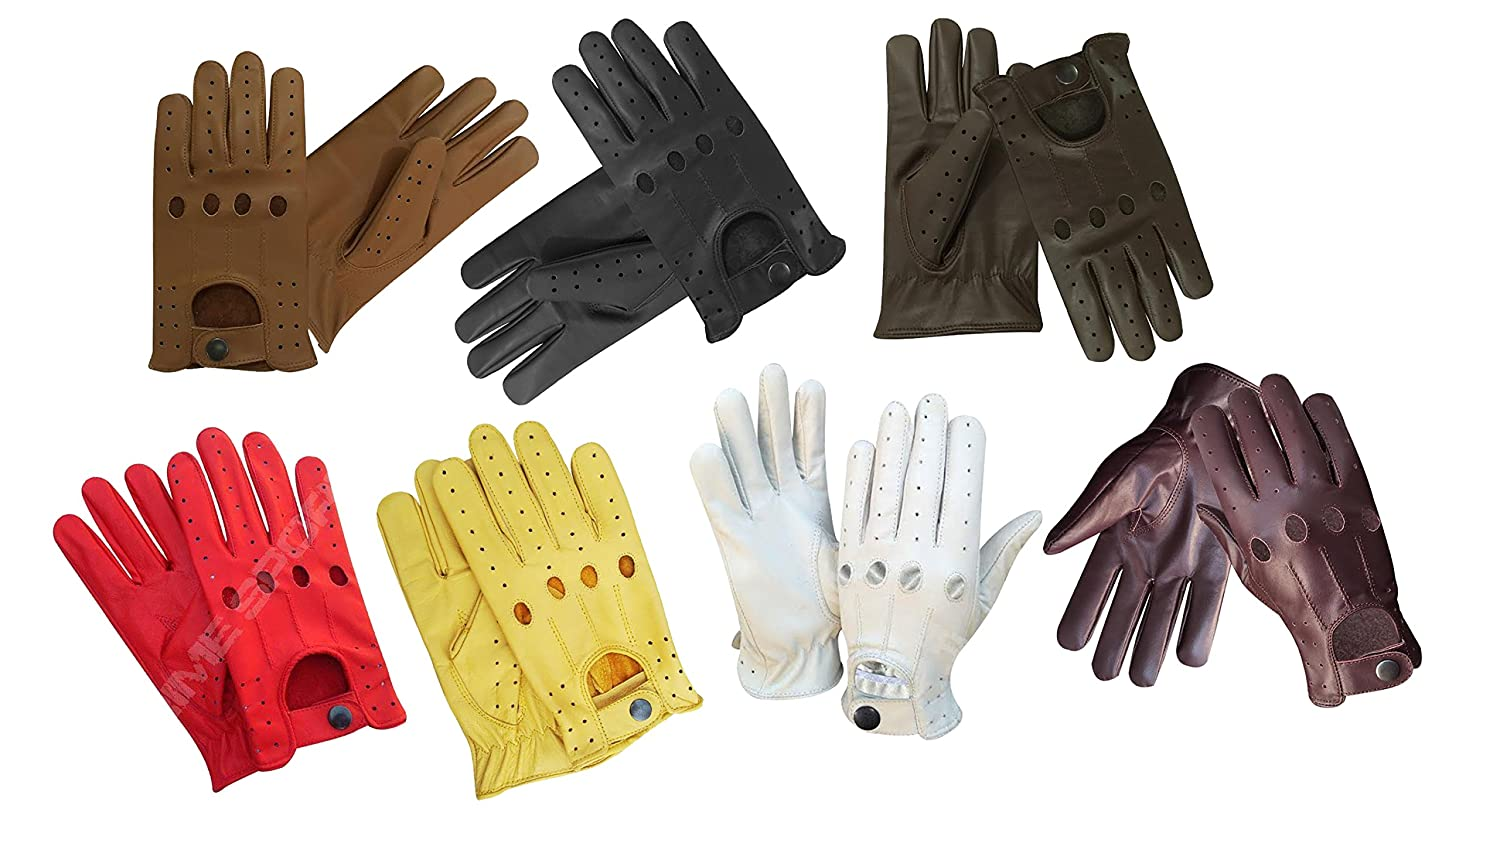 NEW Real Soft Leather Mens Top Quality Driving Gloves Stylish Fashion D-507 All (Black, Small) PRIME LEATHER